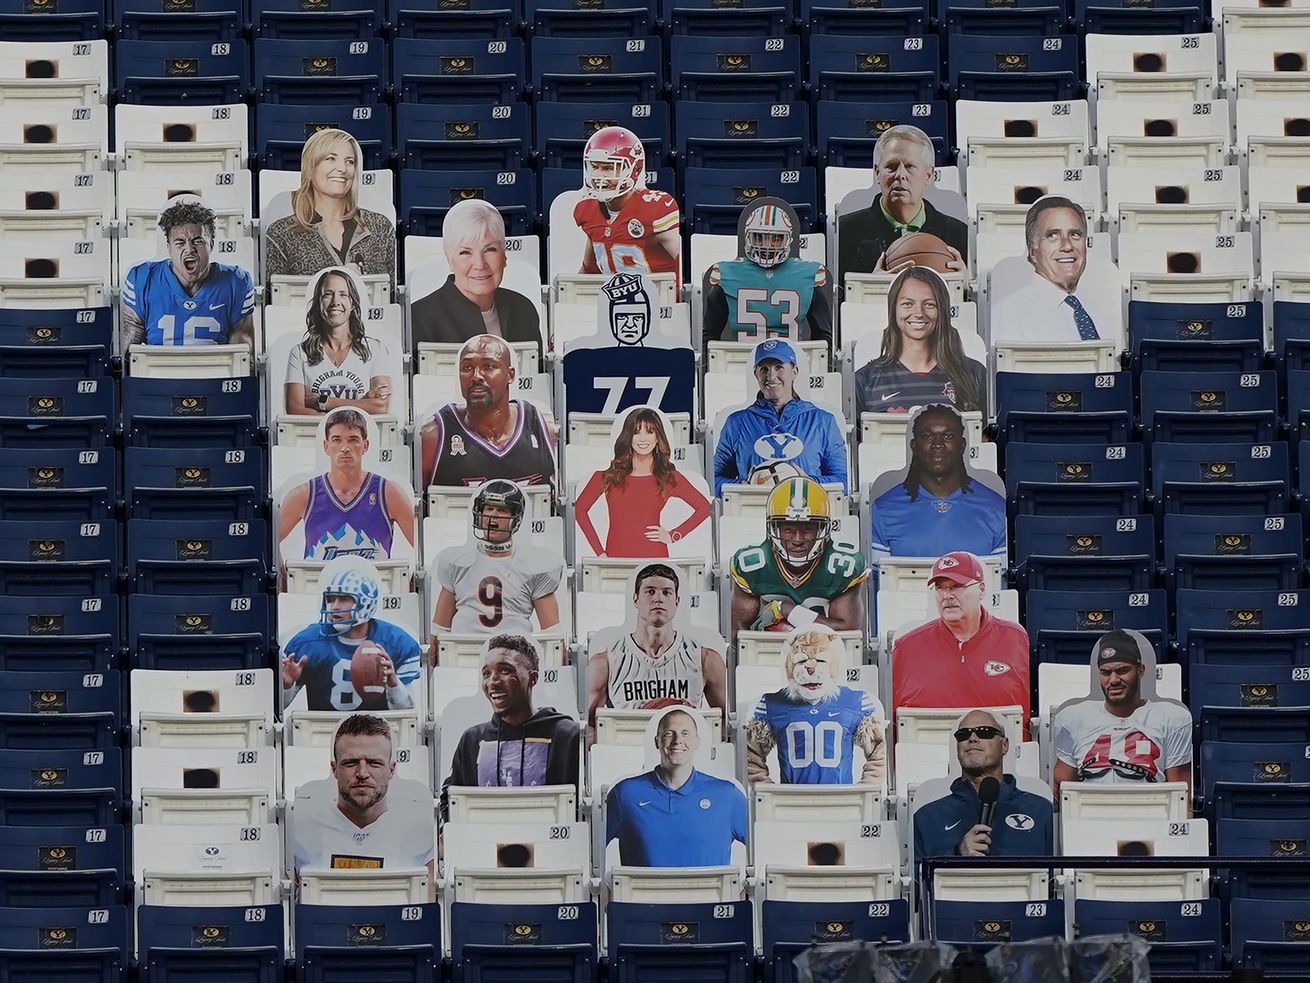 Taysom, KVN, Jimmy Mac, Andy Reid, Jimmer, Spida? They all attend BYU's game, at least in cutout form